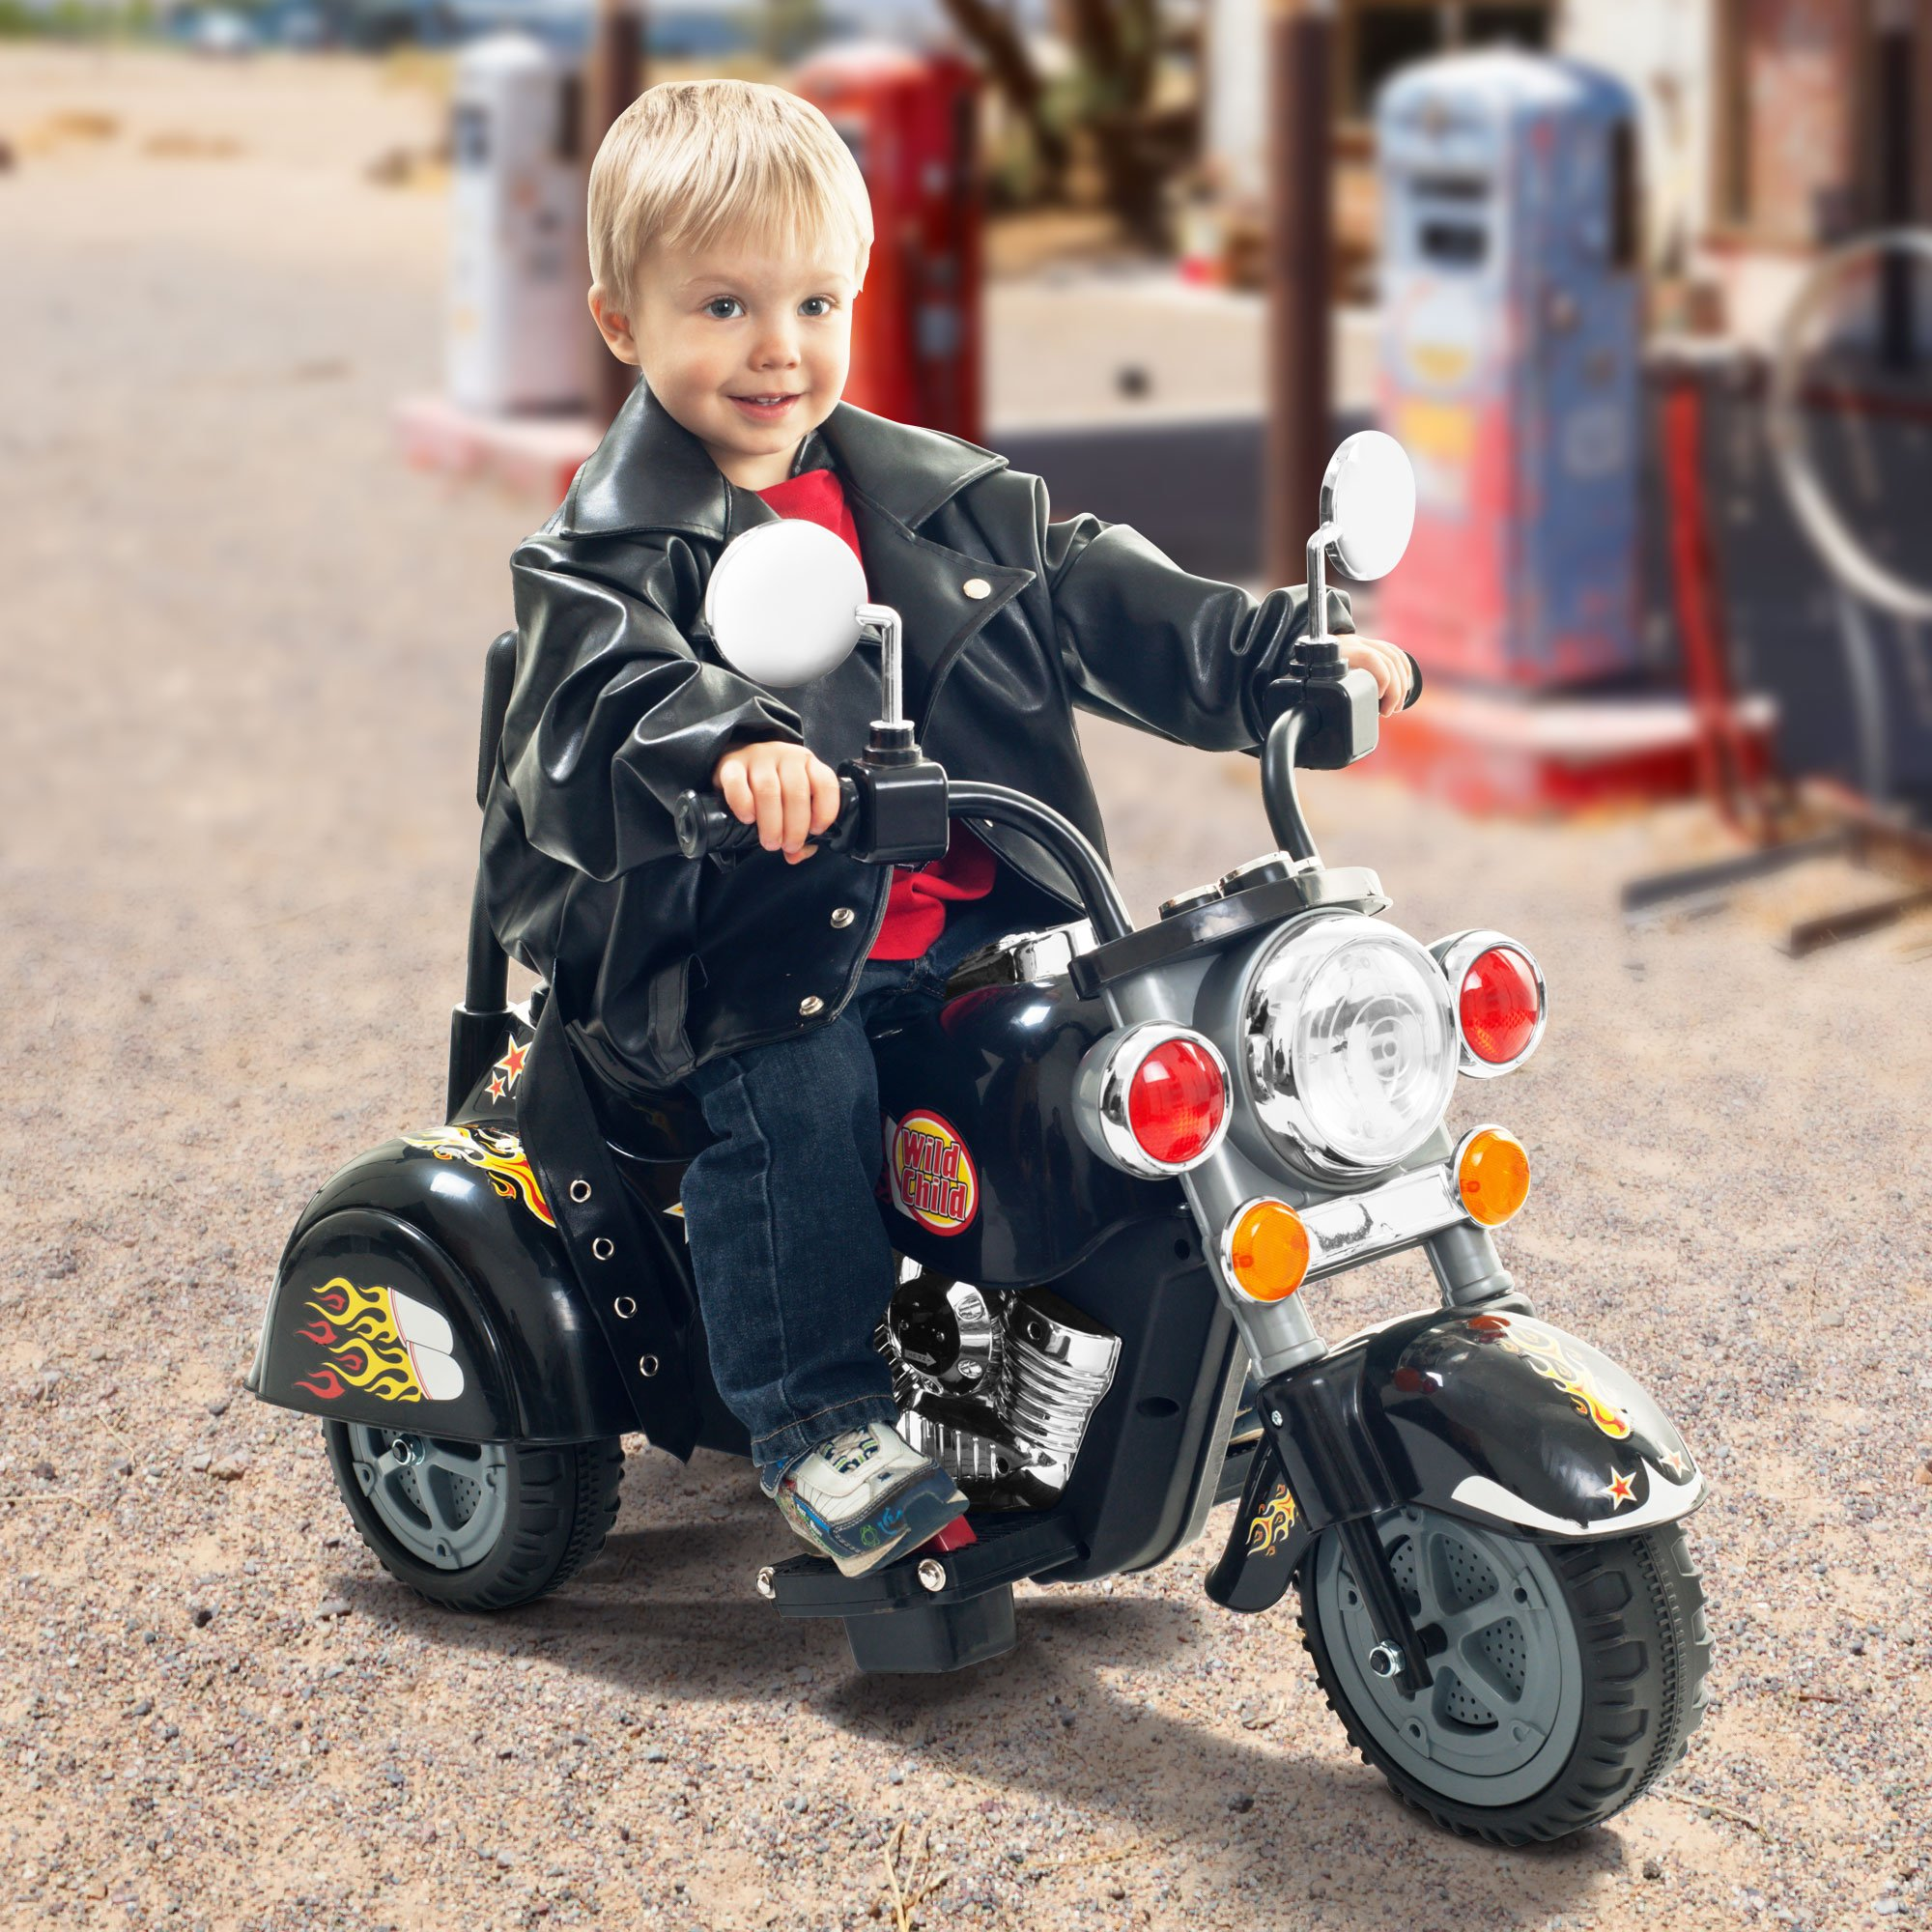 3 Wheel Chopper Trike Motorcycle for Kids, Battery Powered Ride On Toy by Lil' Rider  – Ride on Toys for Boys and Girls, Toddler and Up - Black by Lil' Rider (Image #2)